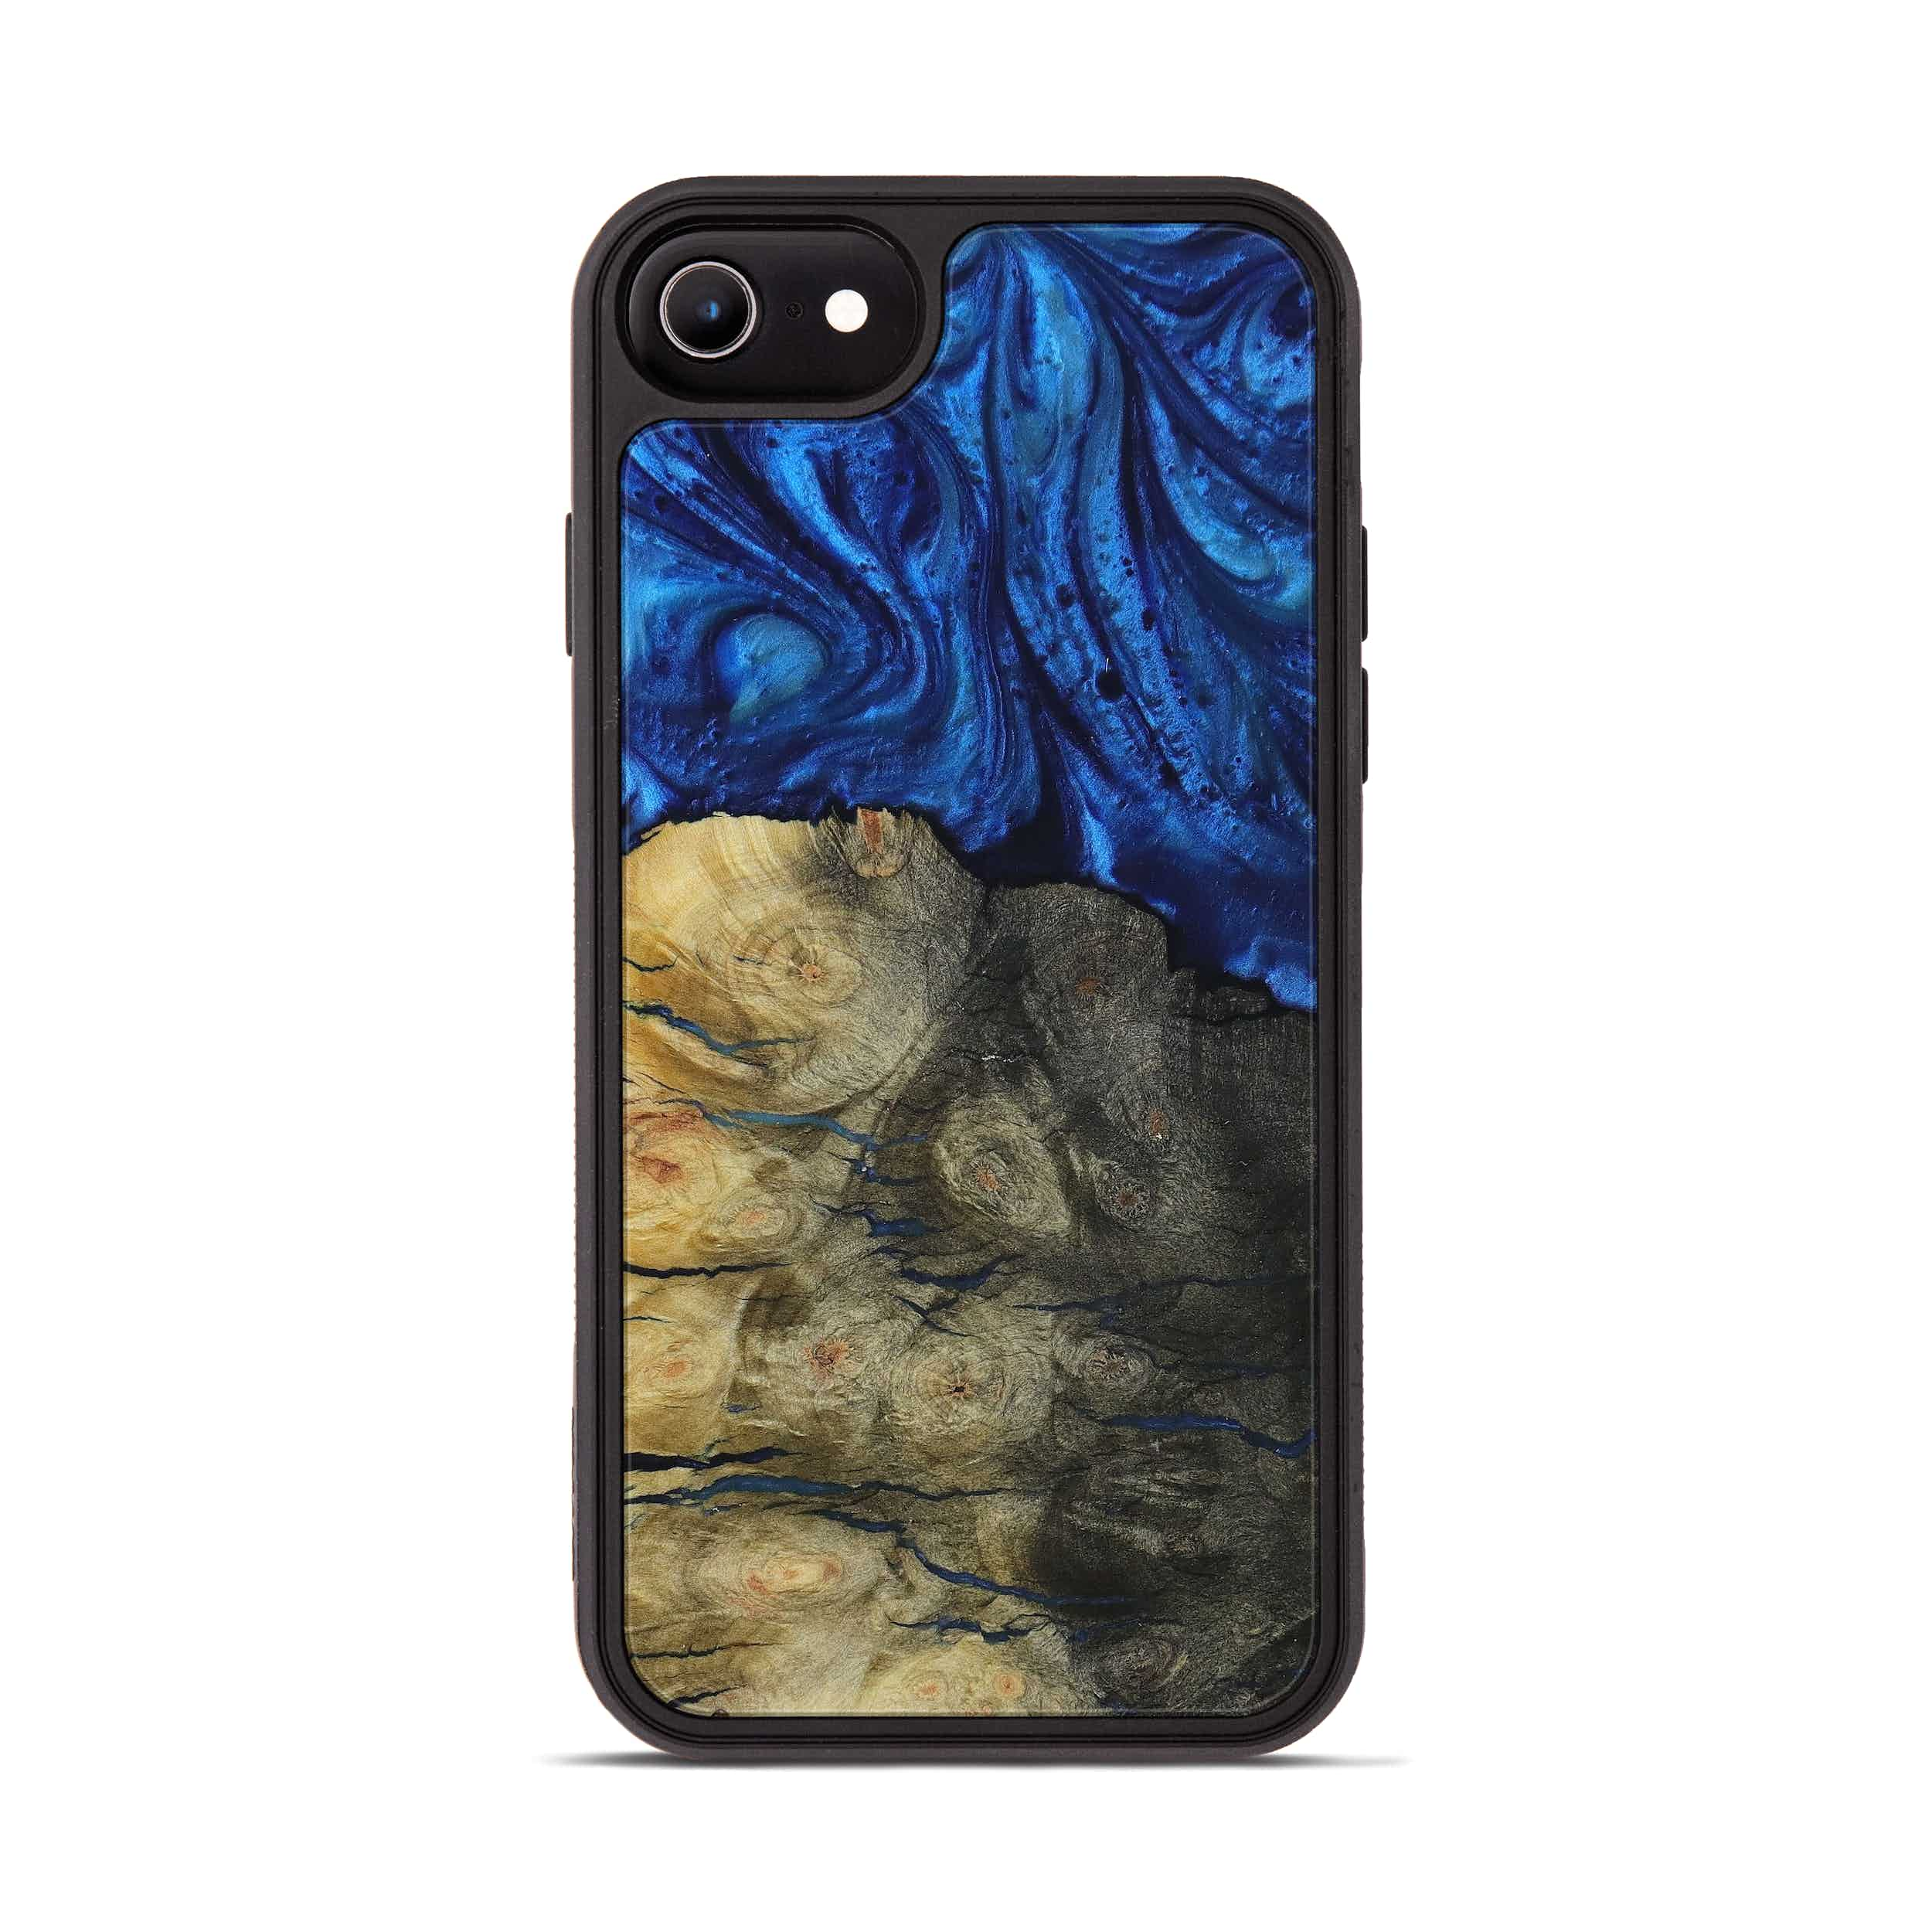 iPhone 6s Wood+Resin Phone Case - Feliza (Dark Blue, 397299)